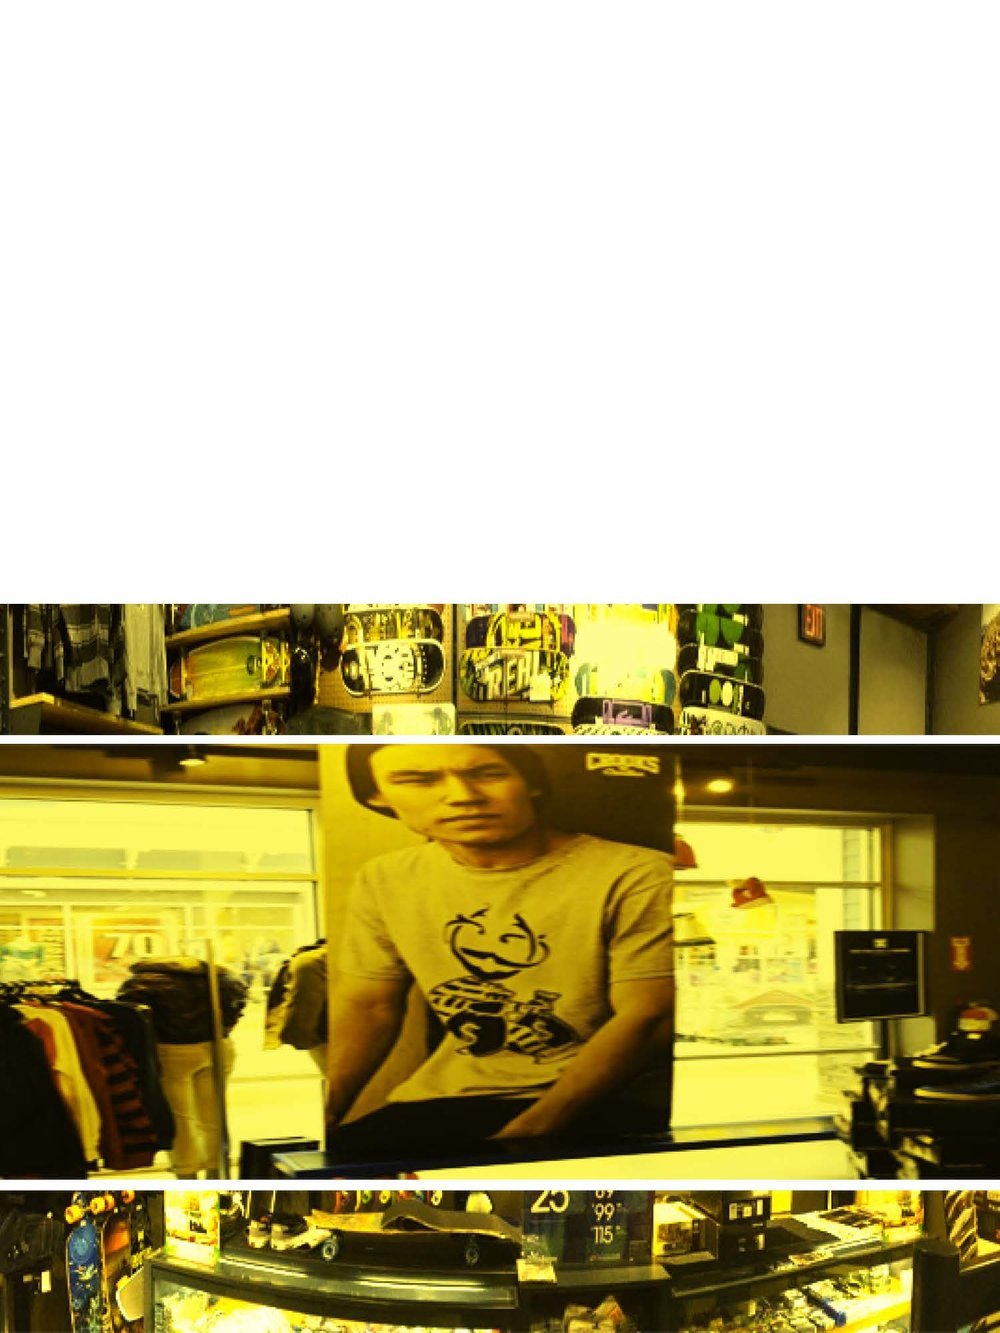 Final Zumiez Annual Report_Page_12.jpg